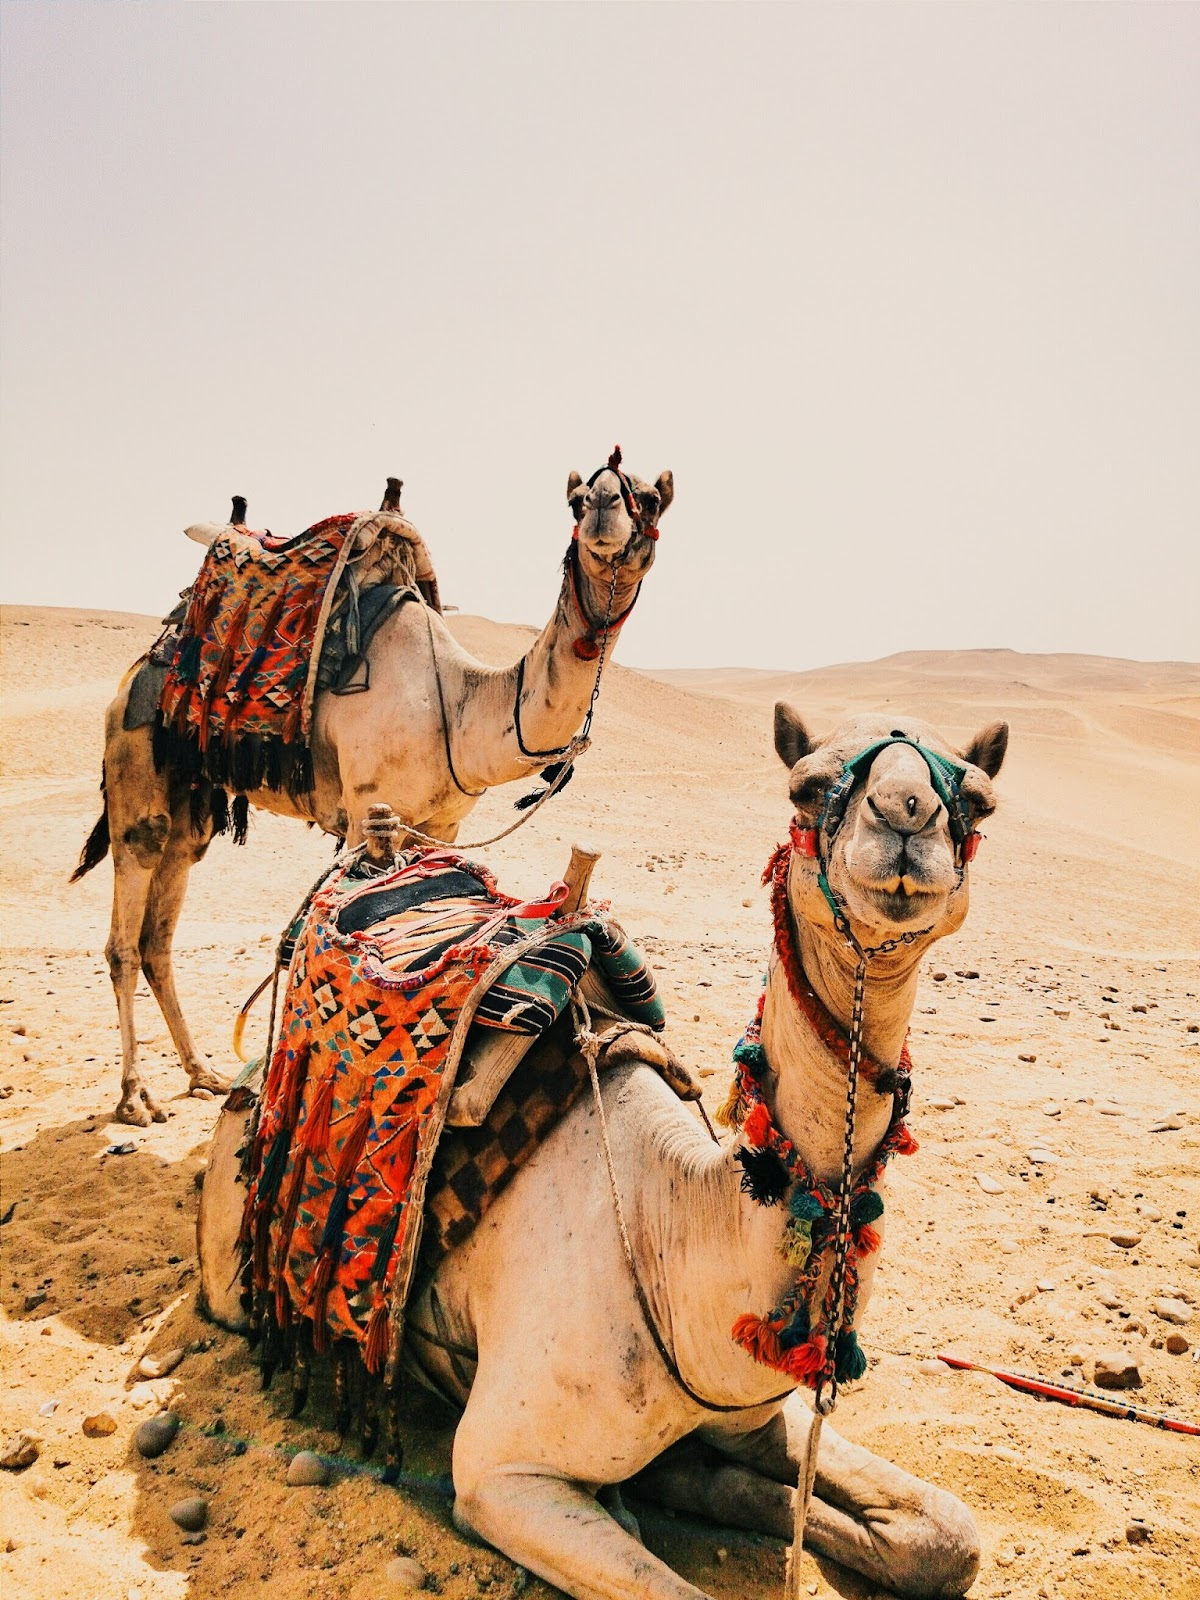 Two camel rest after a long journey in the desert.